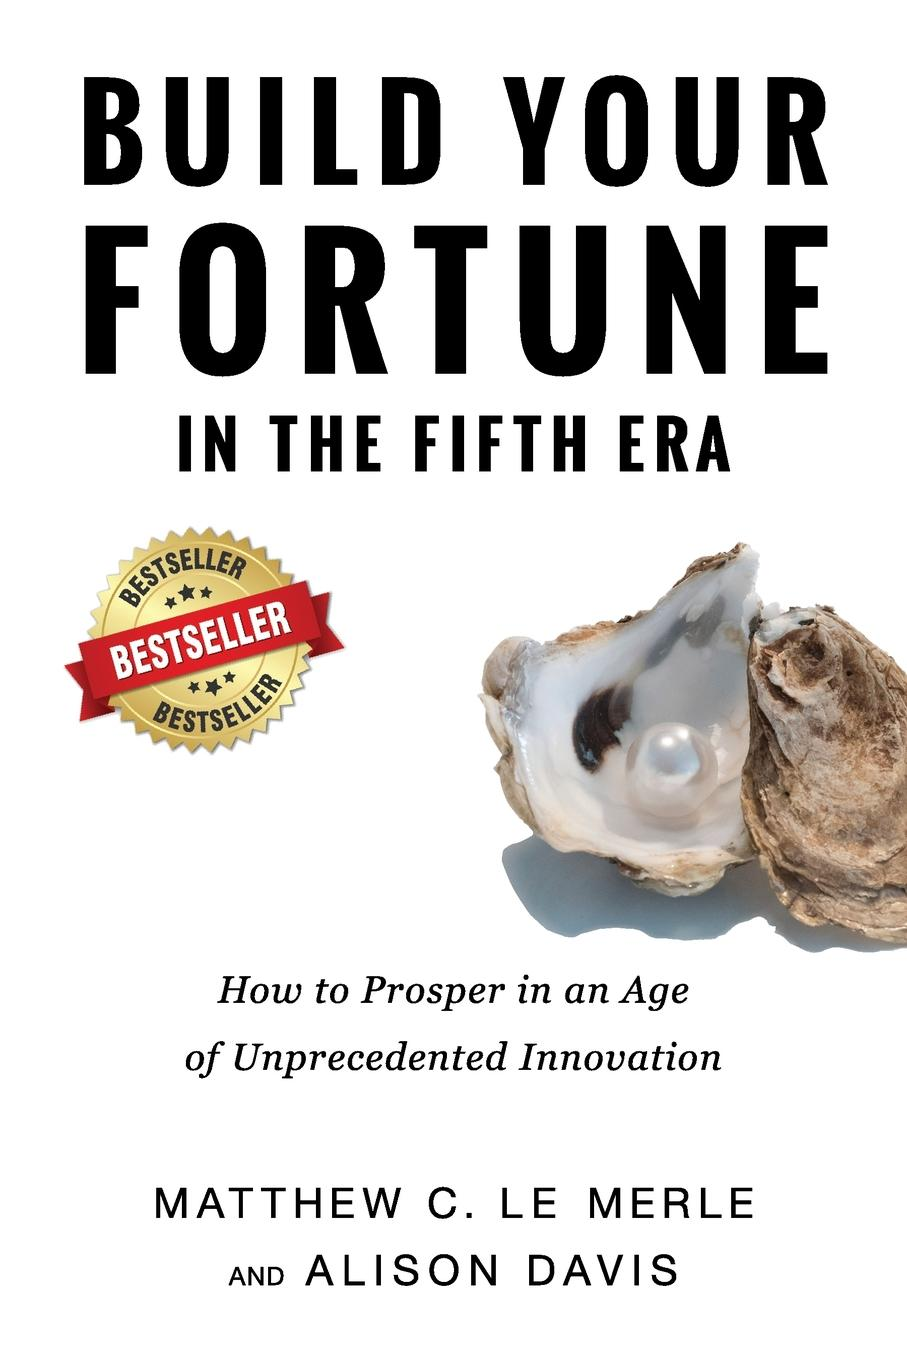 Matthew C Le Merle, Davis Alison Build Your Fortune in the Fifth Era. How to Prosper in an Age of Unprecedented Innovation claus vogt the global debt trap how to escape the danger and build a fortune